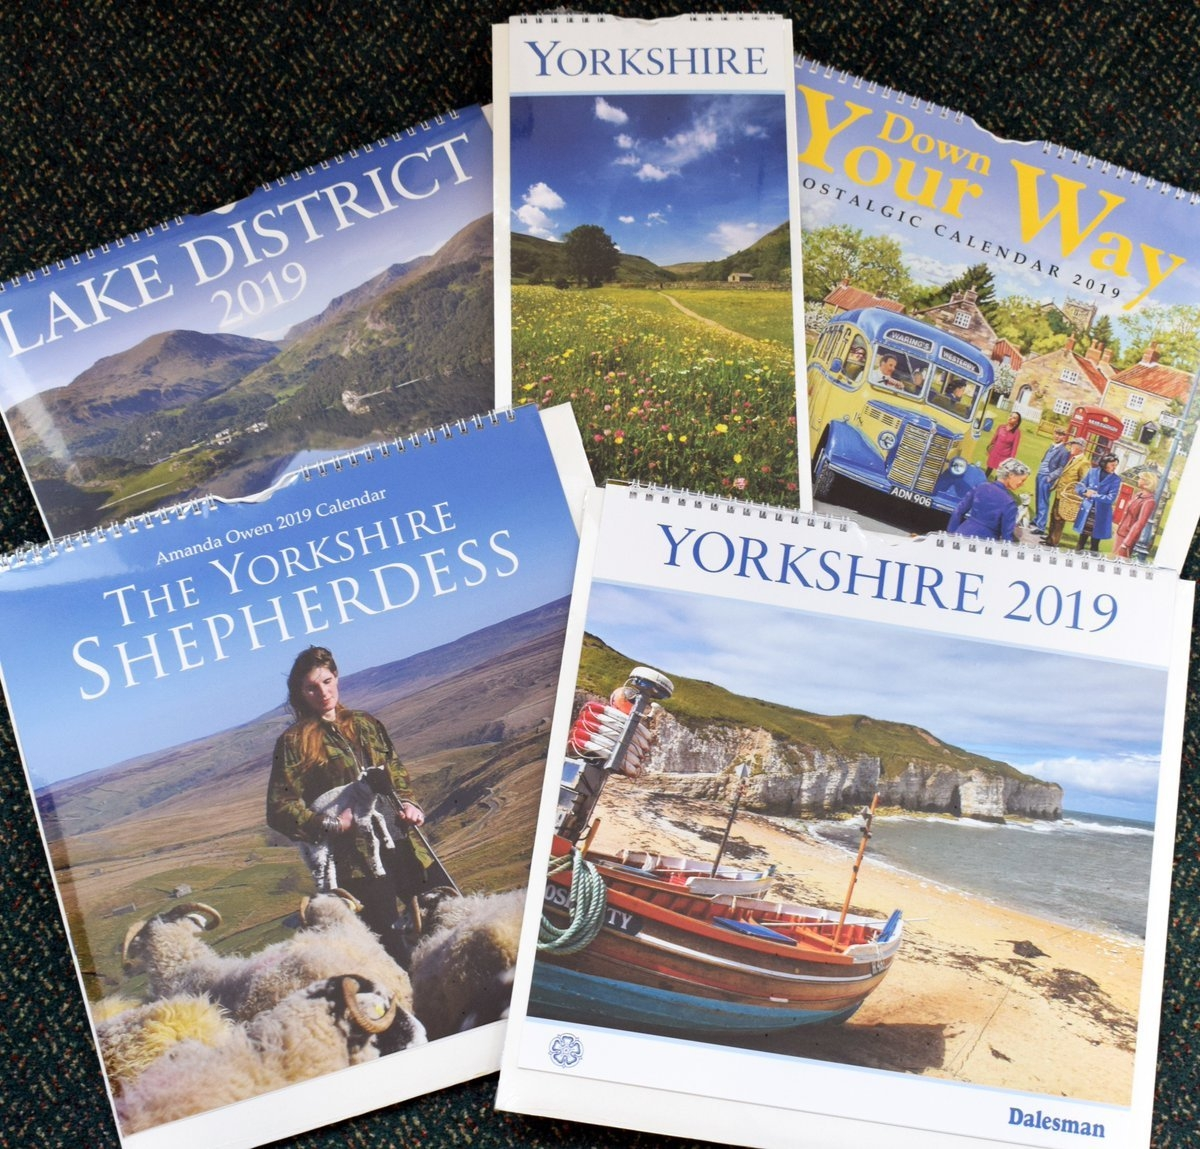 "Adrian Braddy On Twitter: ""look What's Just Arrived From The Calendar 2019 Yorkshire"